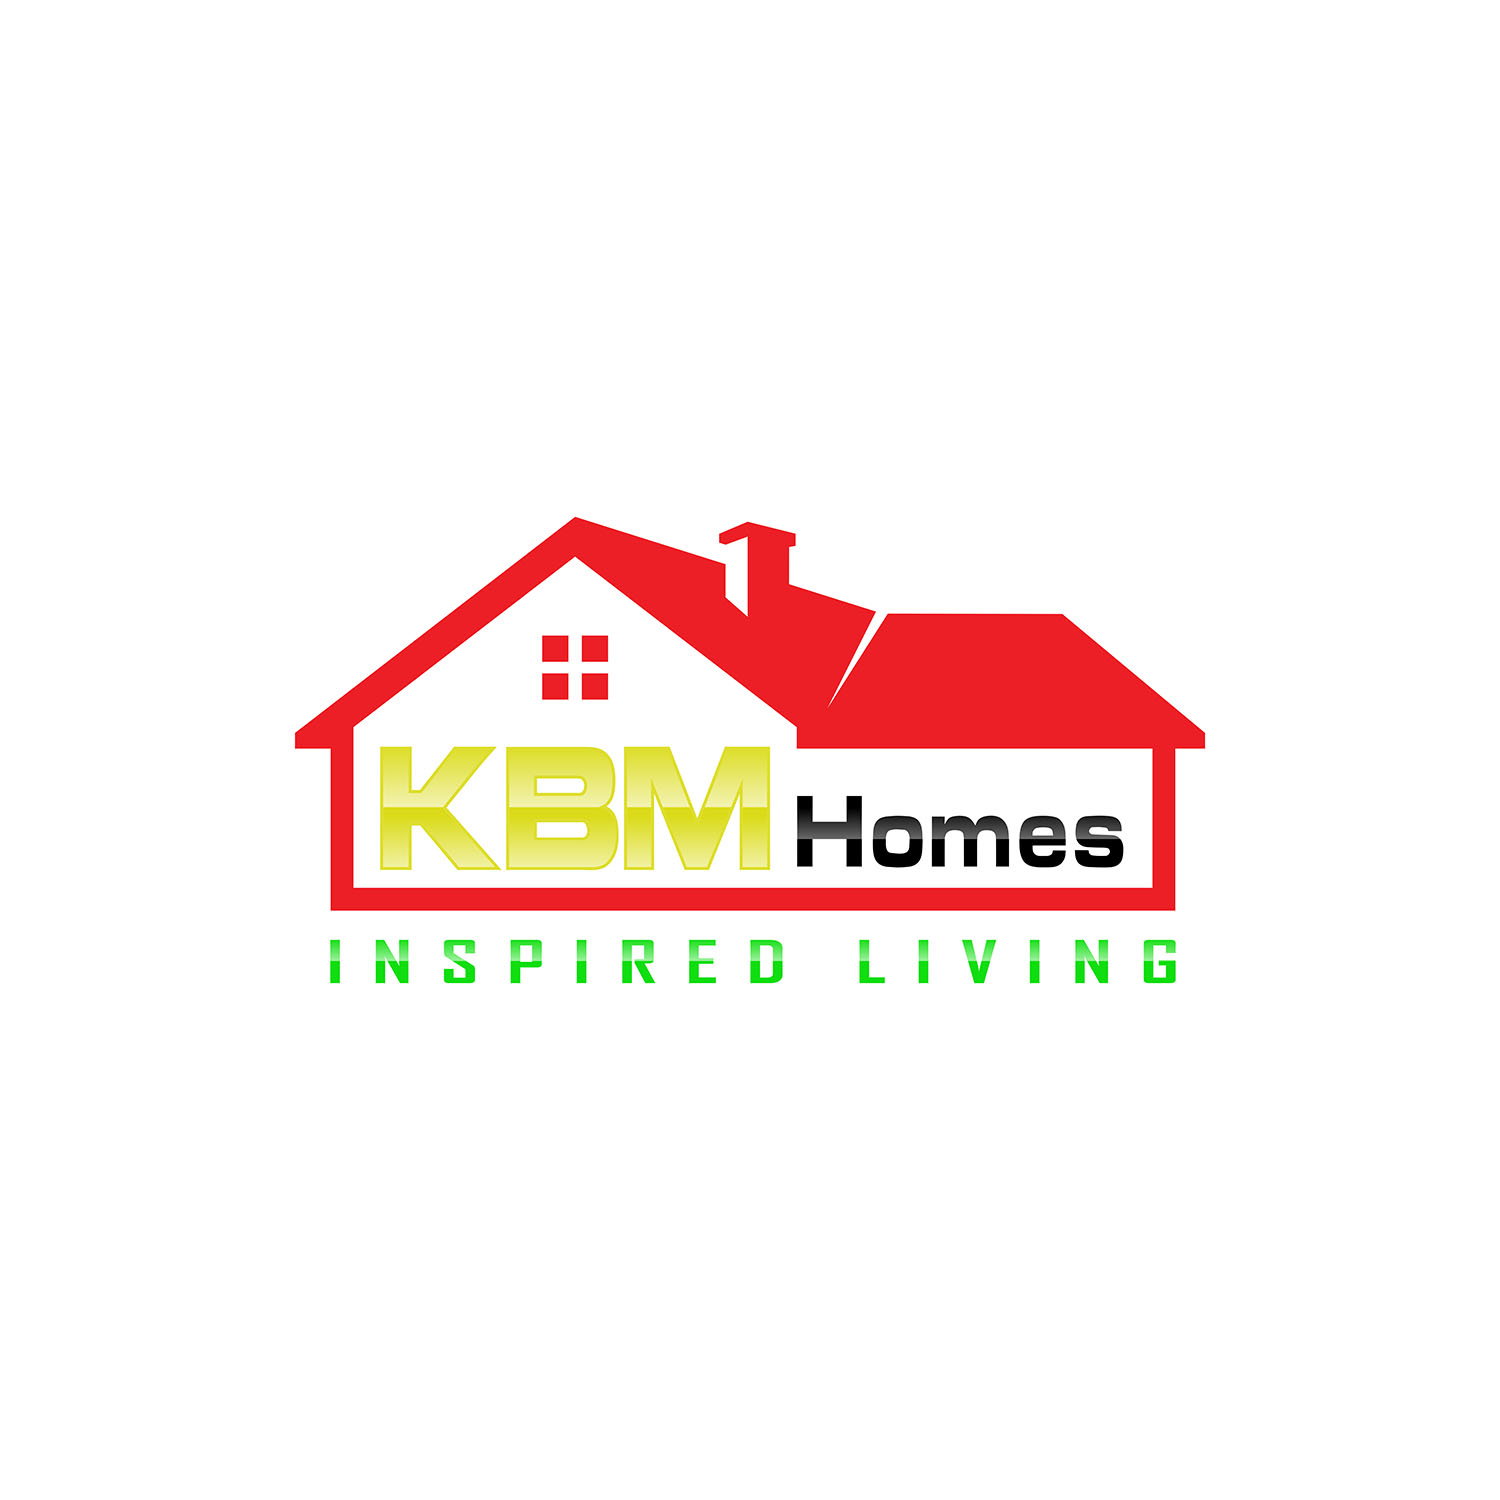 Serious Modern Home Builder Logo Design For Kbm Homes Perhaps Inside Within The House Outline Inspired Living Outside Perhaps Below The House Outline Again Open To Creative Suggestion By